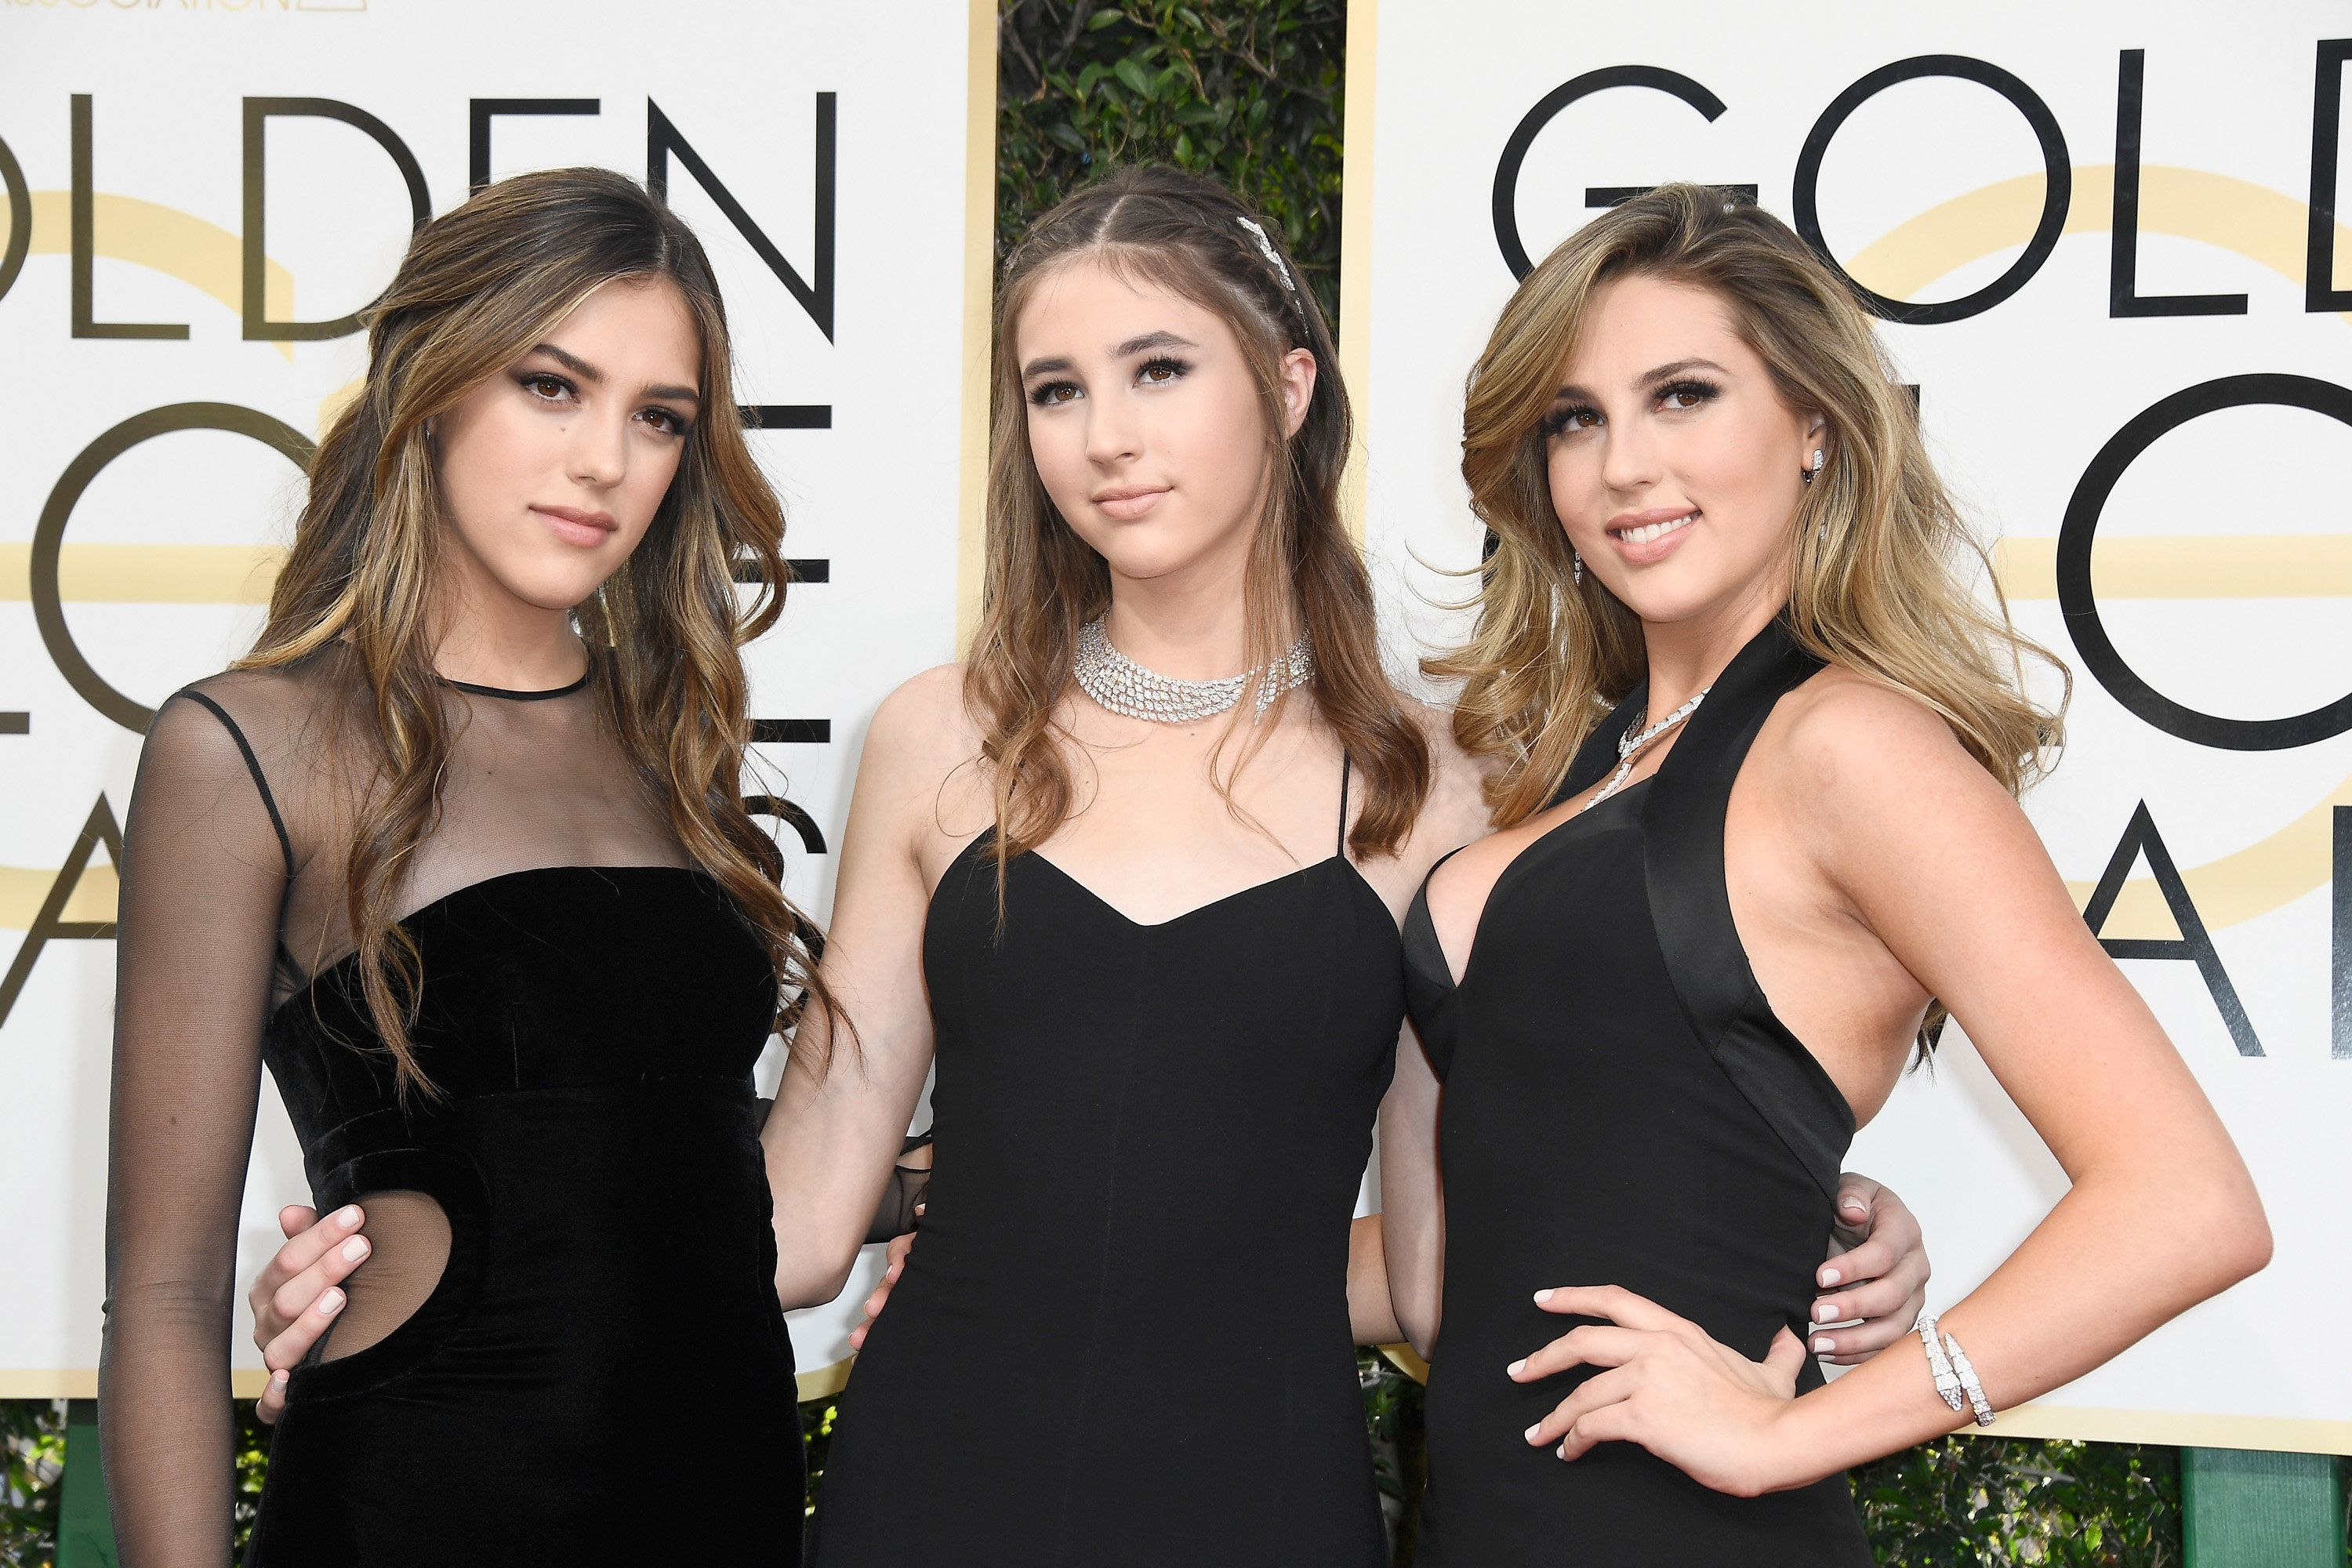 Golden Globes 2017: Sylvester Stallone's Daughters Sistine, Sophia And Scarlet Lead The Best